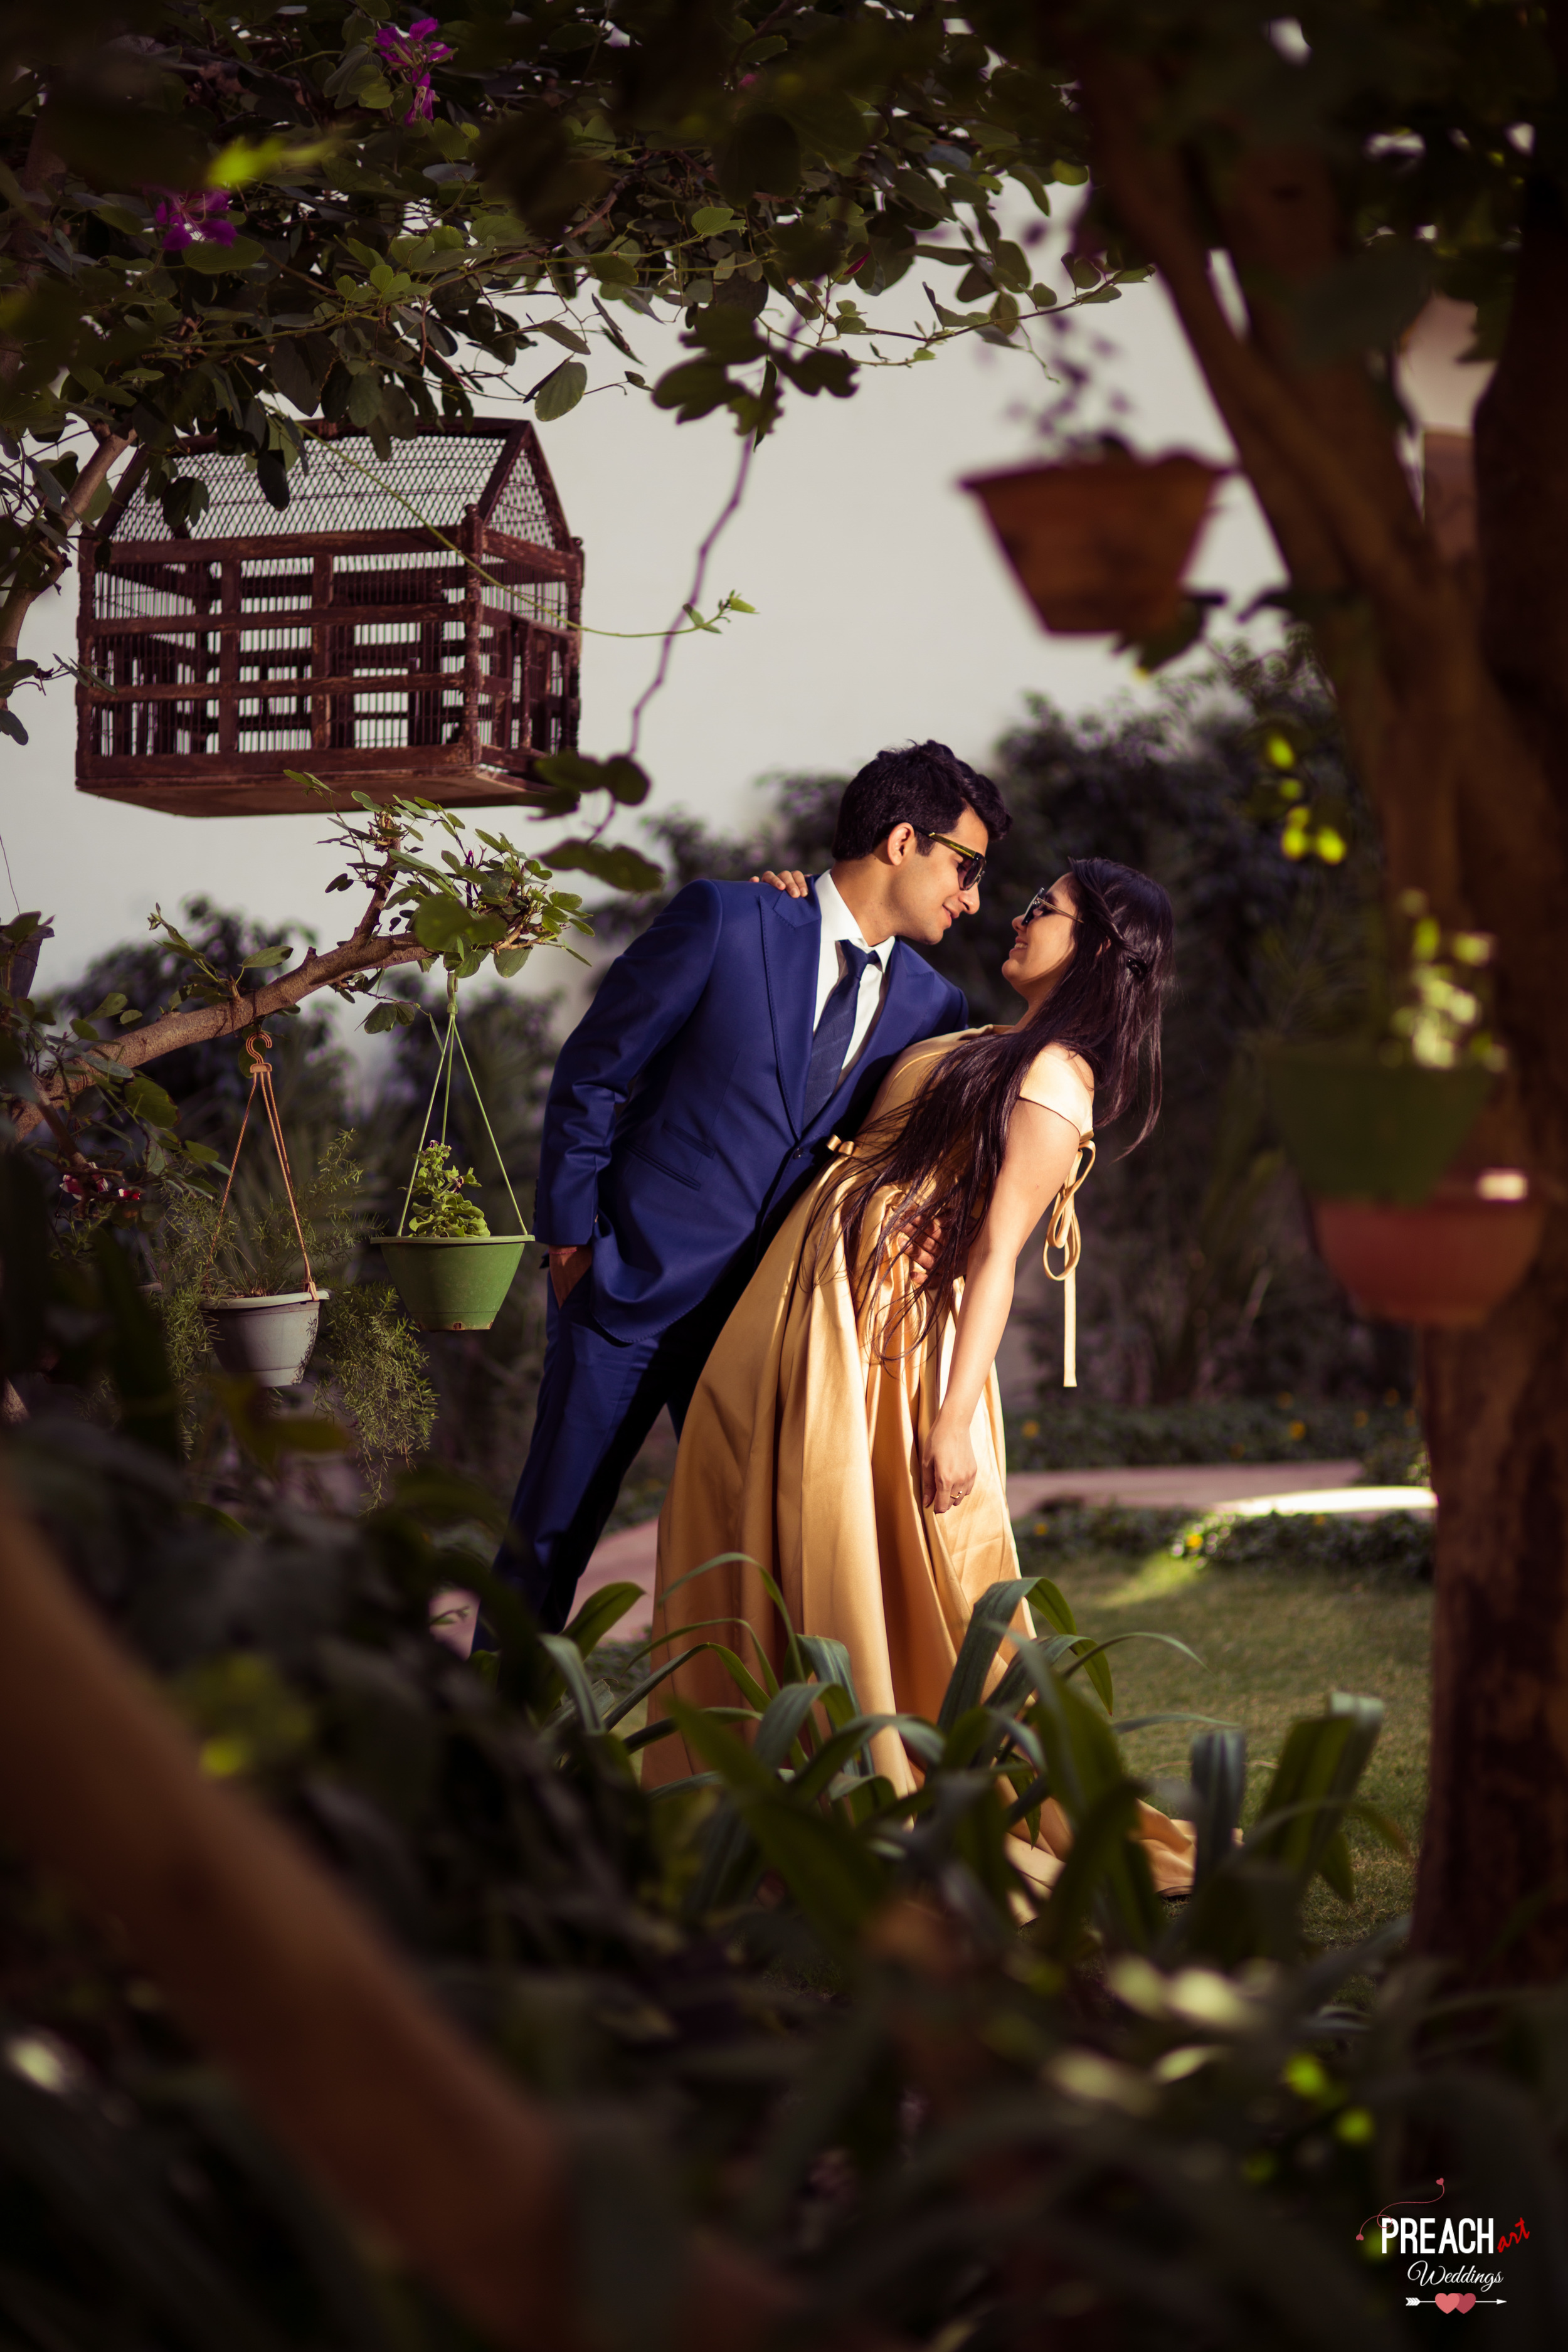 A&B_Udaipur Pre-wedding Shoot_PREACH ART-64.jpg